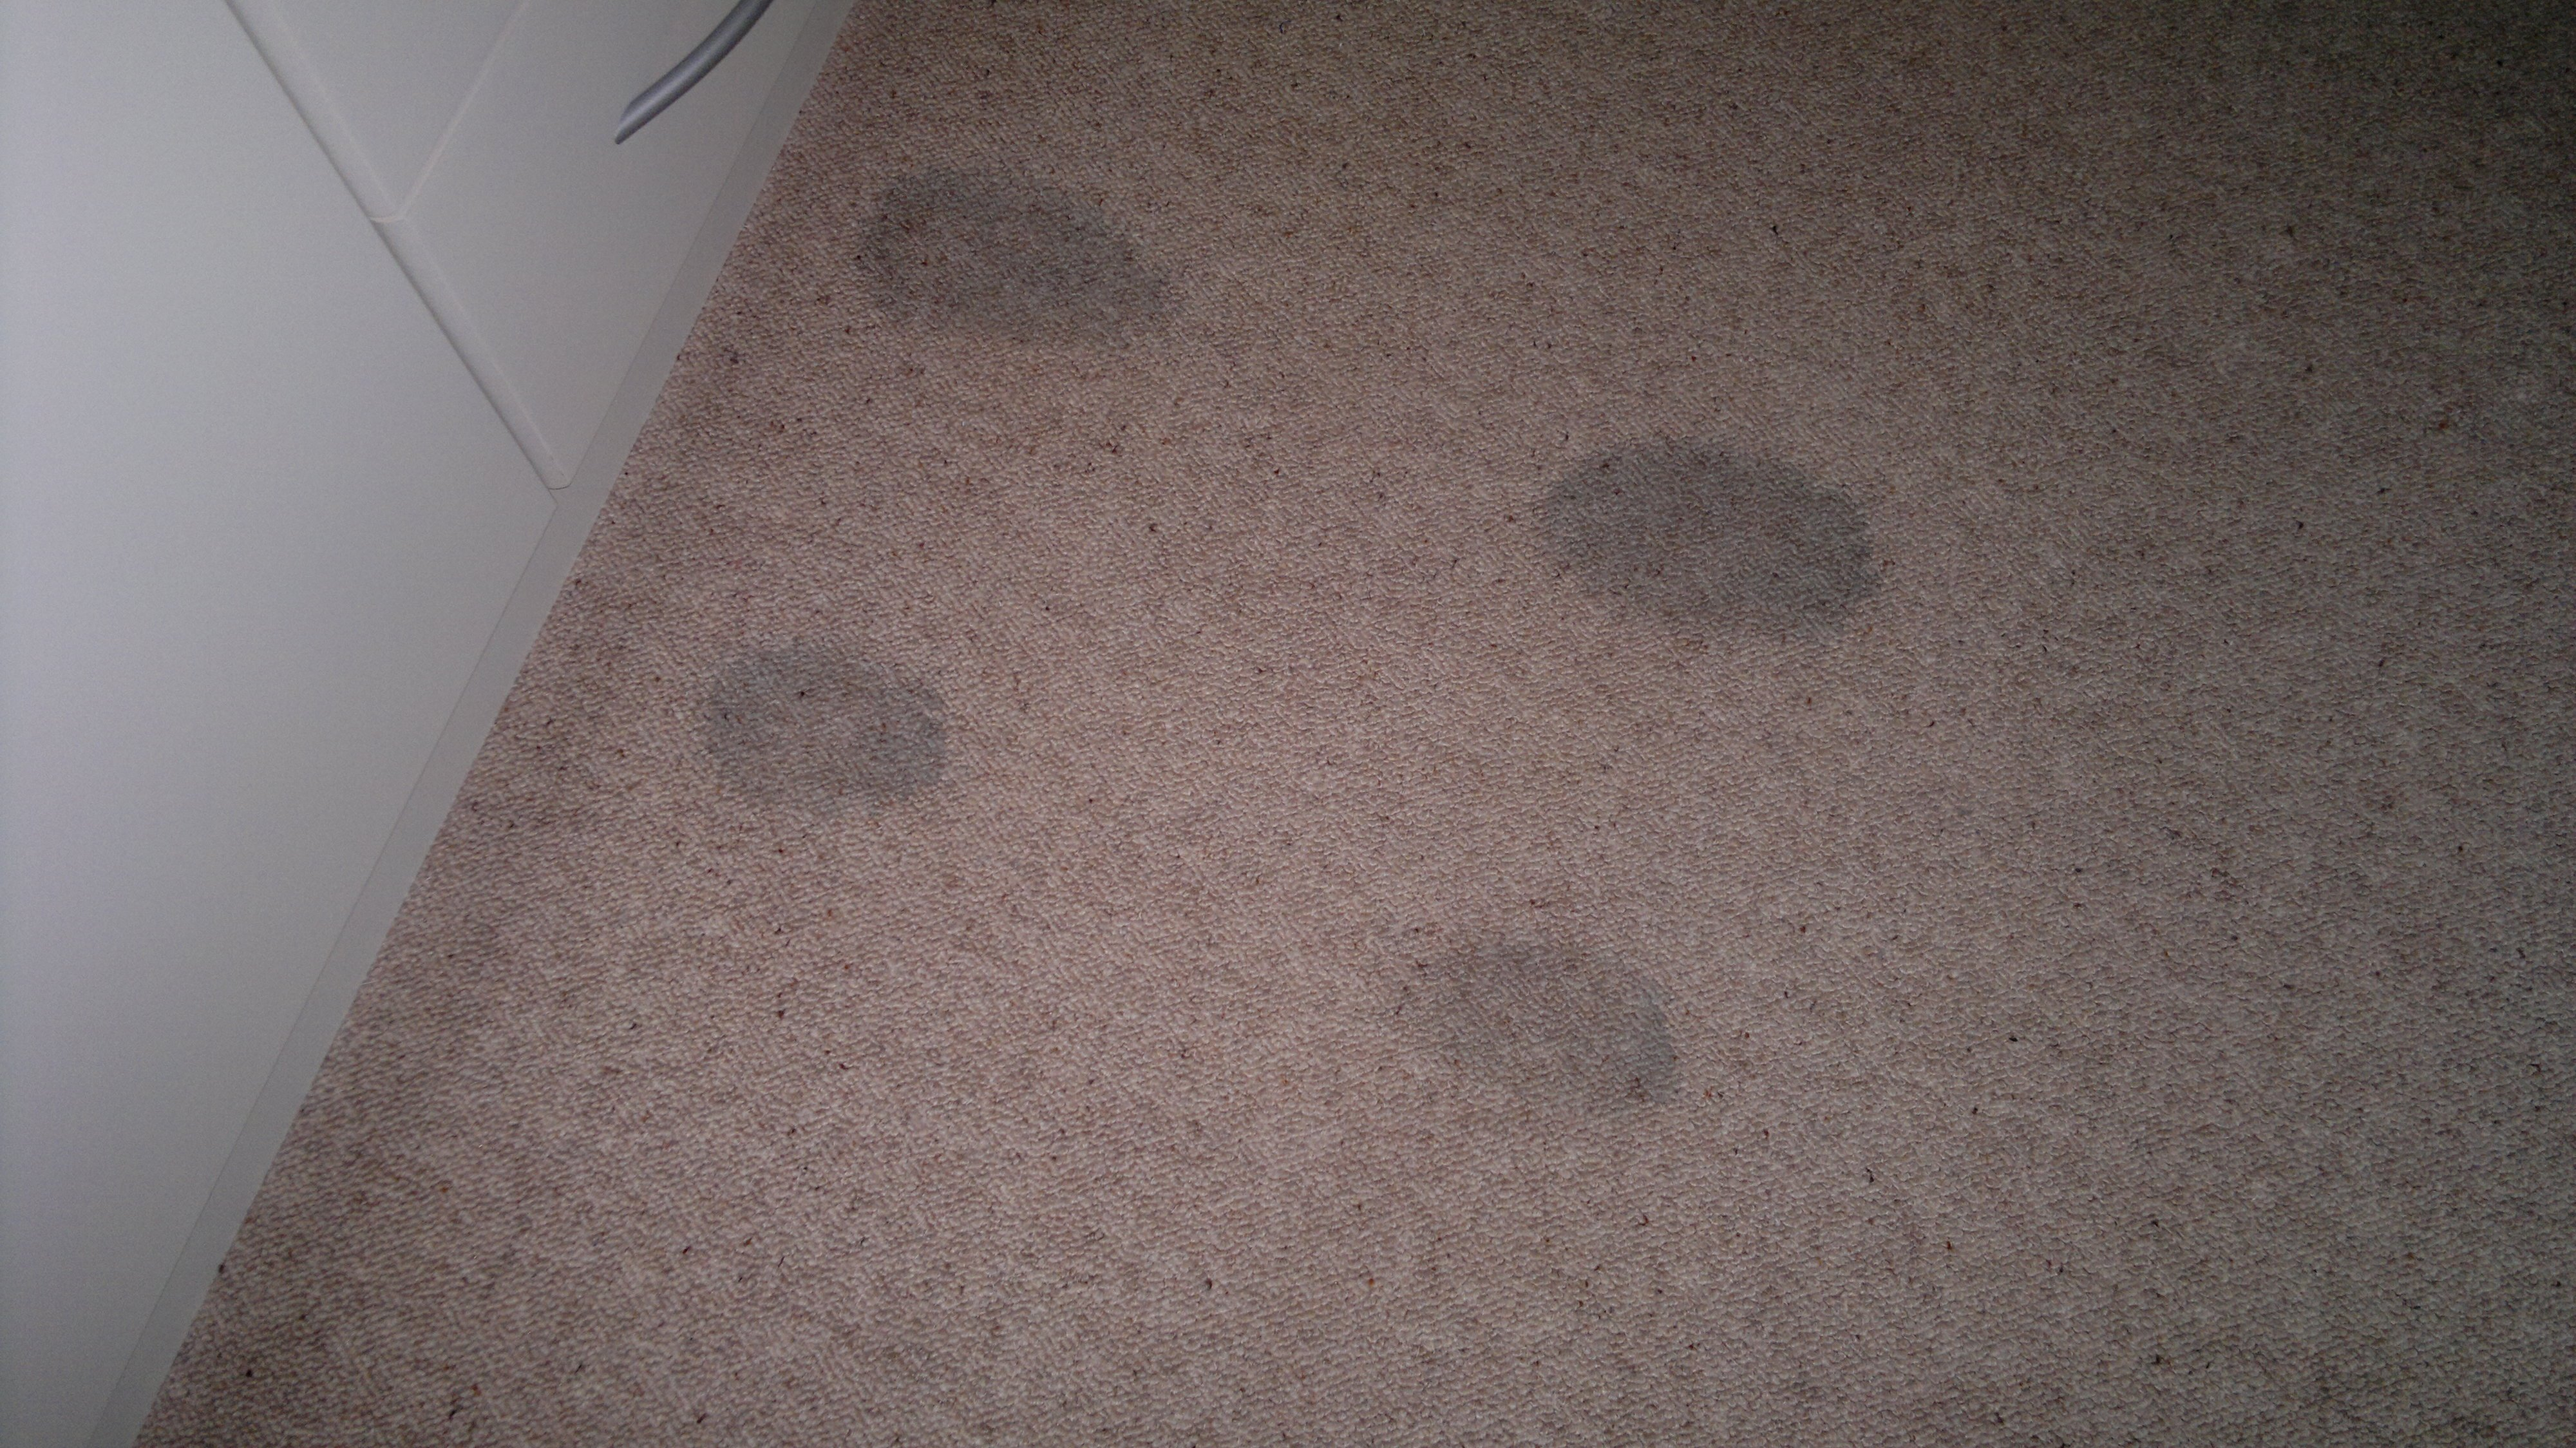 four dye stains on a wool carpet caused by wet clothes dripping onto the carpet